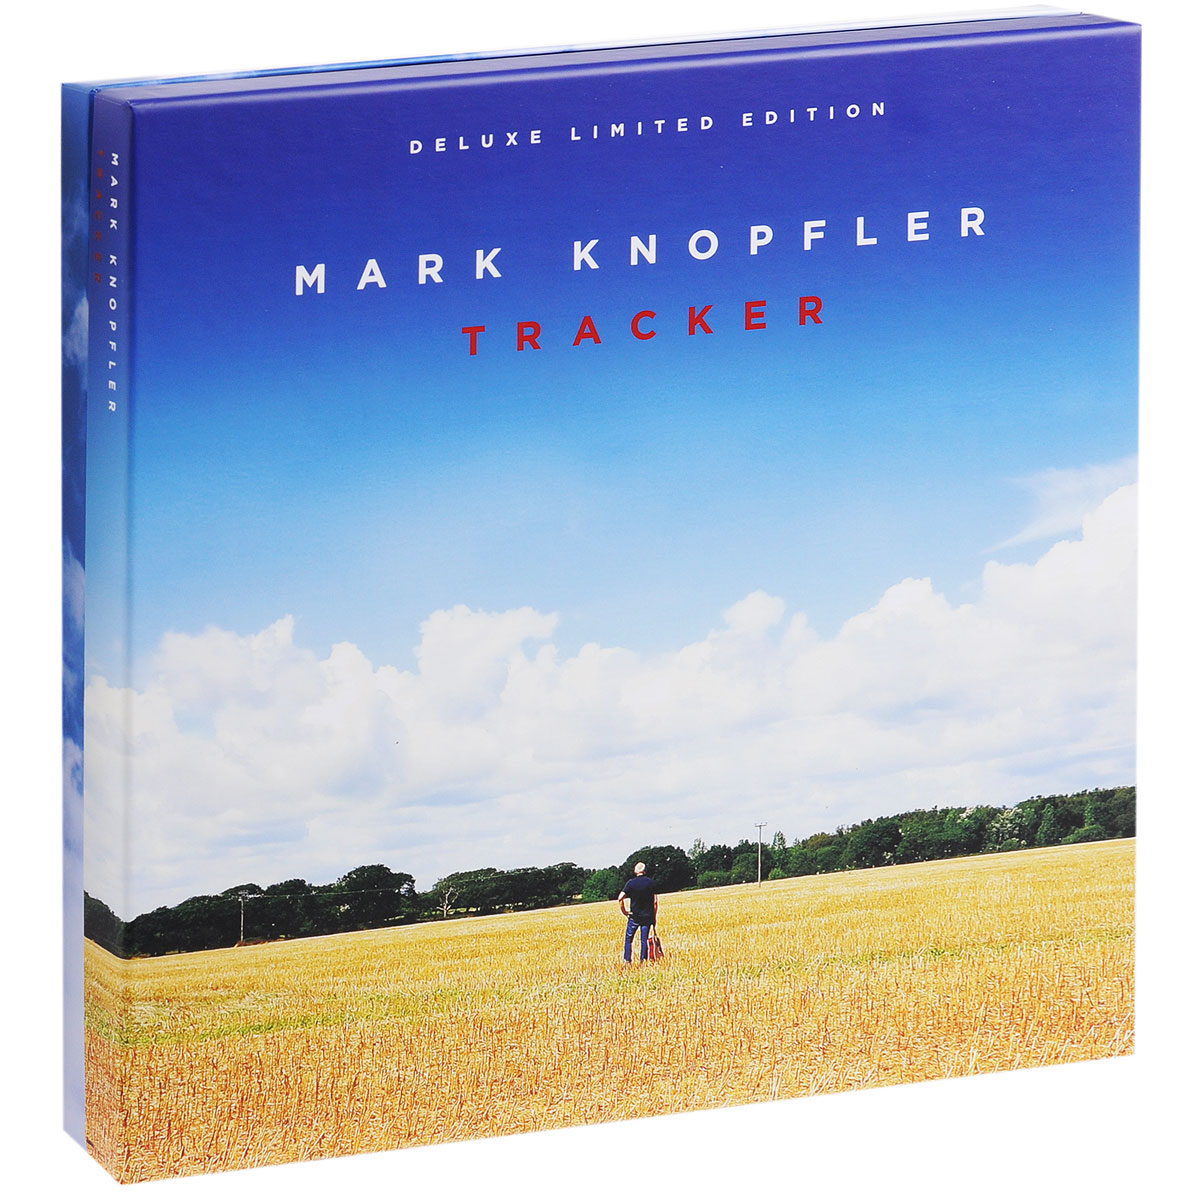 Марк Нопфлер Mark Knopfler. Tracker. Deluxe Limited Edition (2 CD + DVD + 2 LP) марк нопфлер mark knopfler tracker deluxe limited edition 2 cd dvd 2 lp